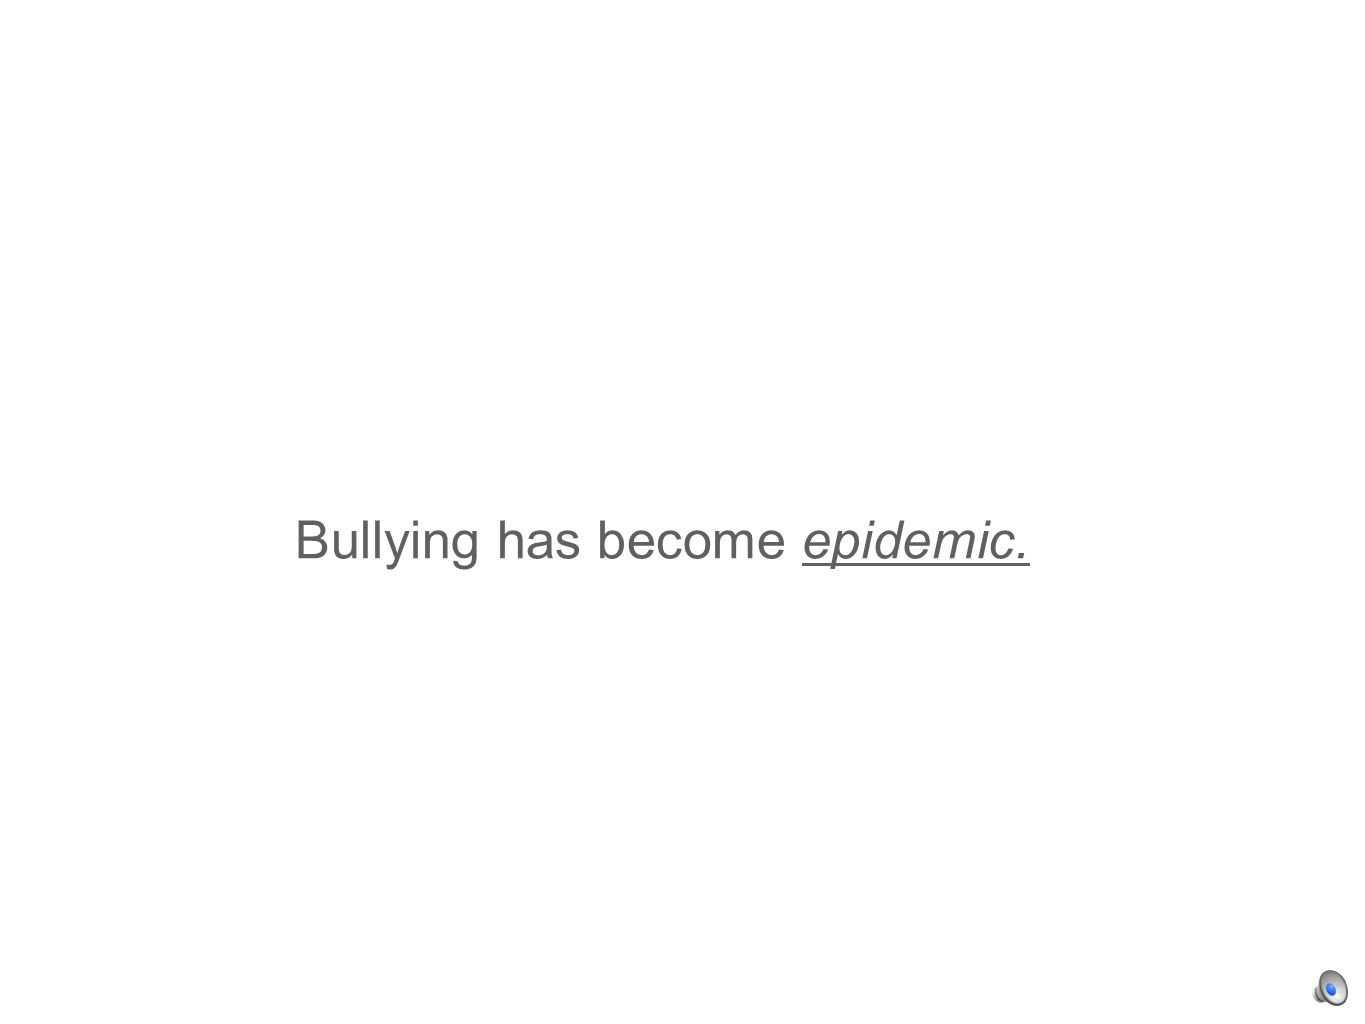 Bullying has become epidemic.